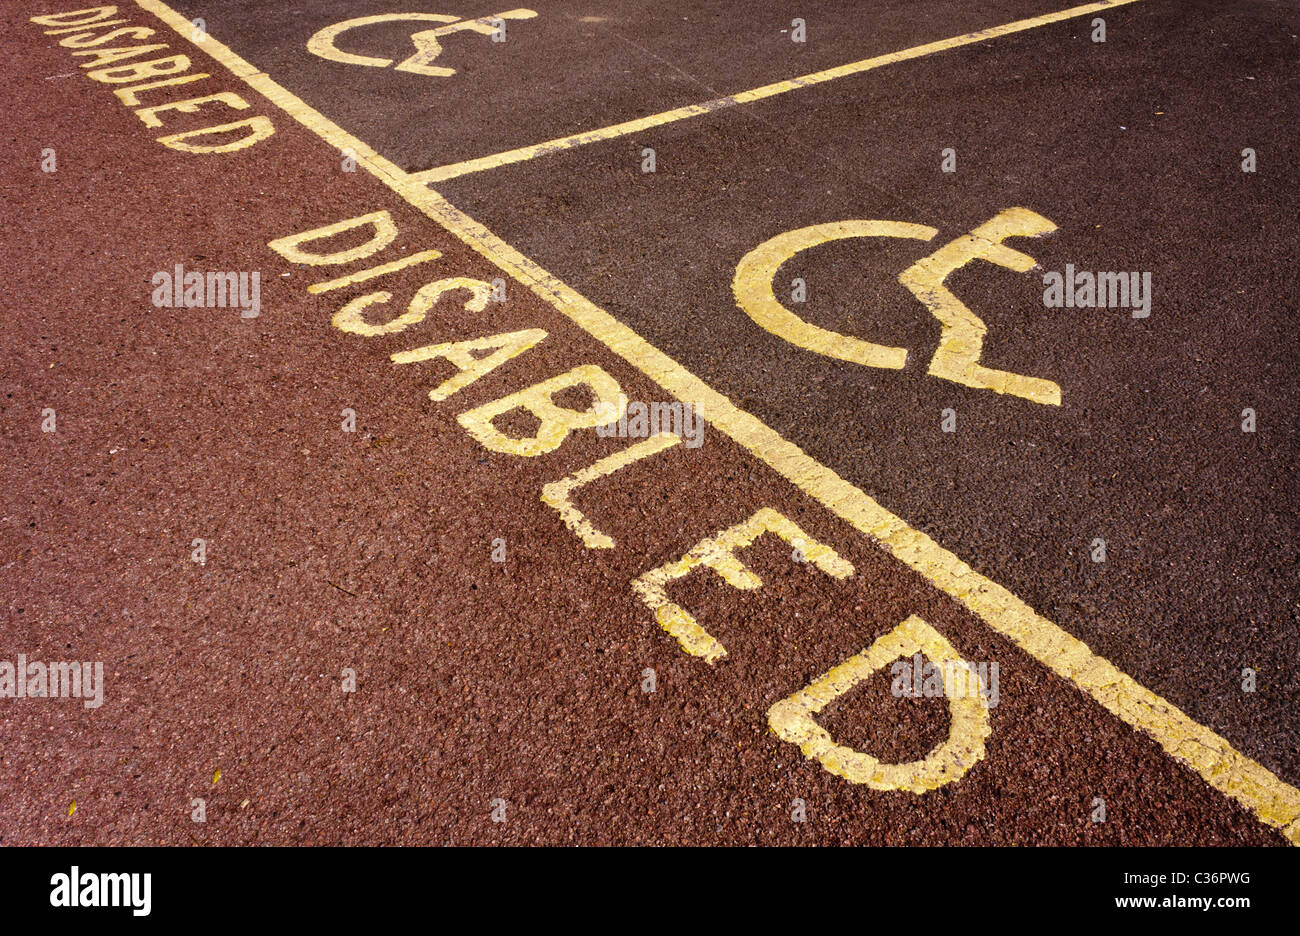 Disabled parking bay with wheelchair user icon, painted yellow on red tarmac. Stock Photo